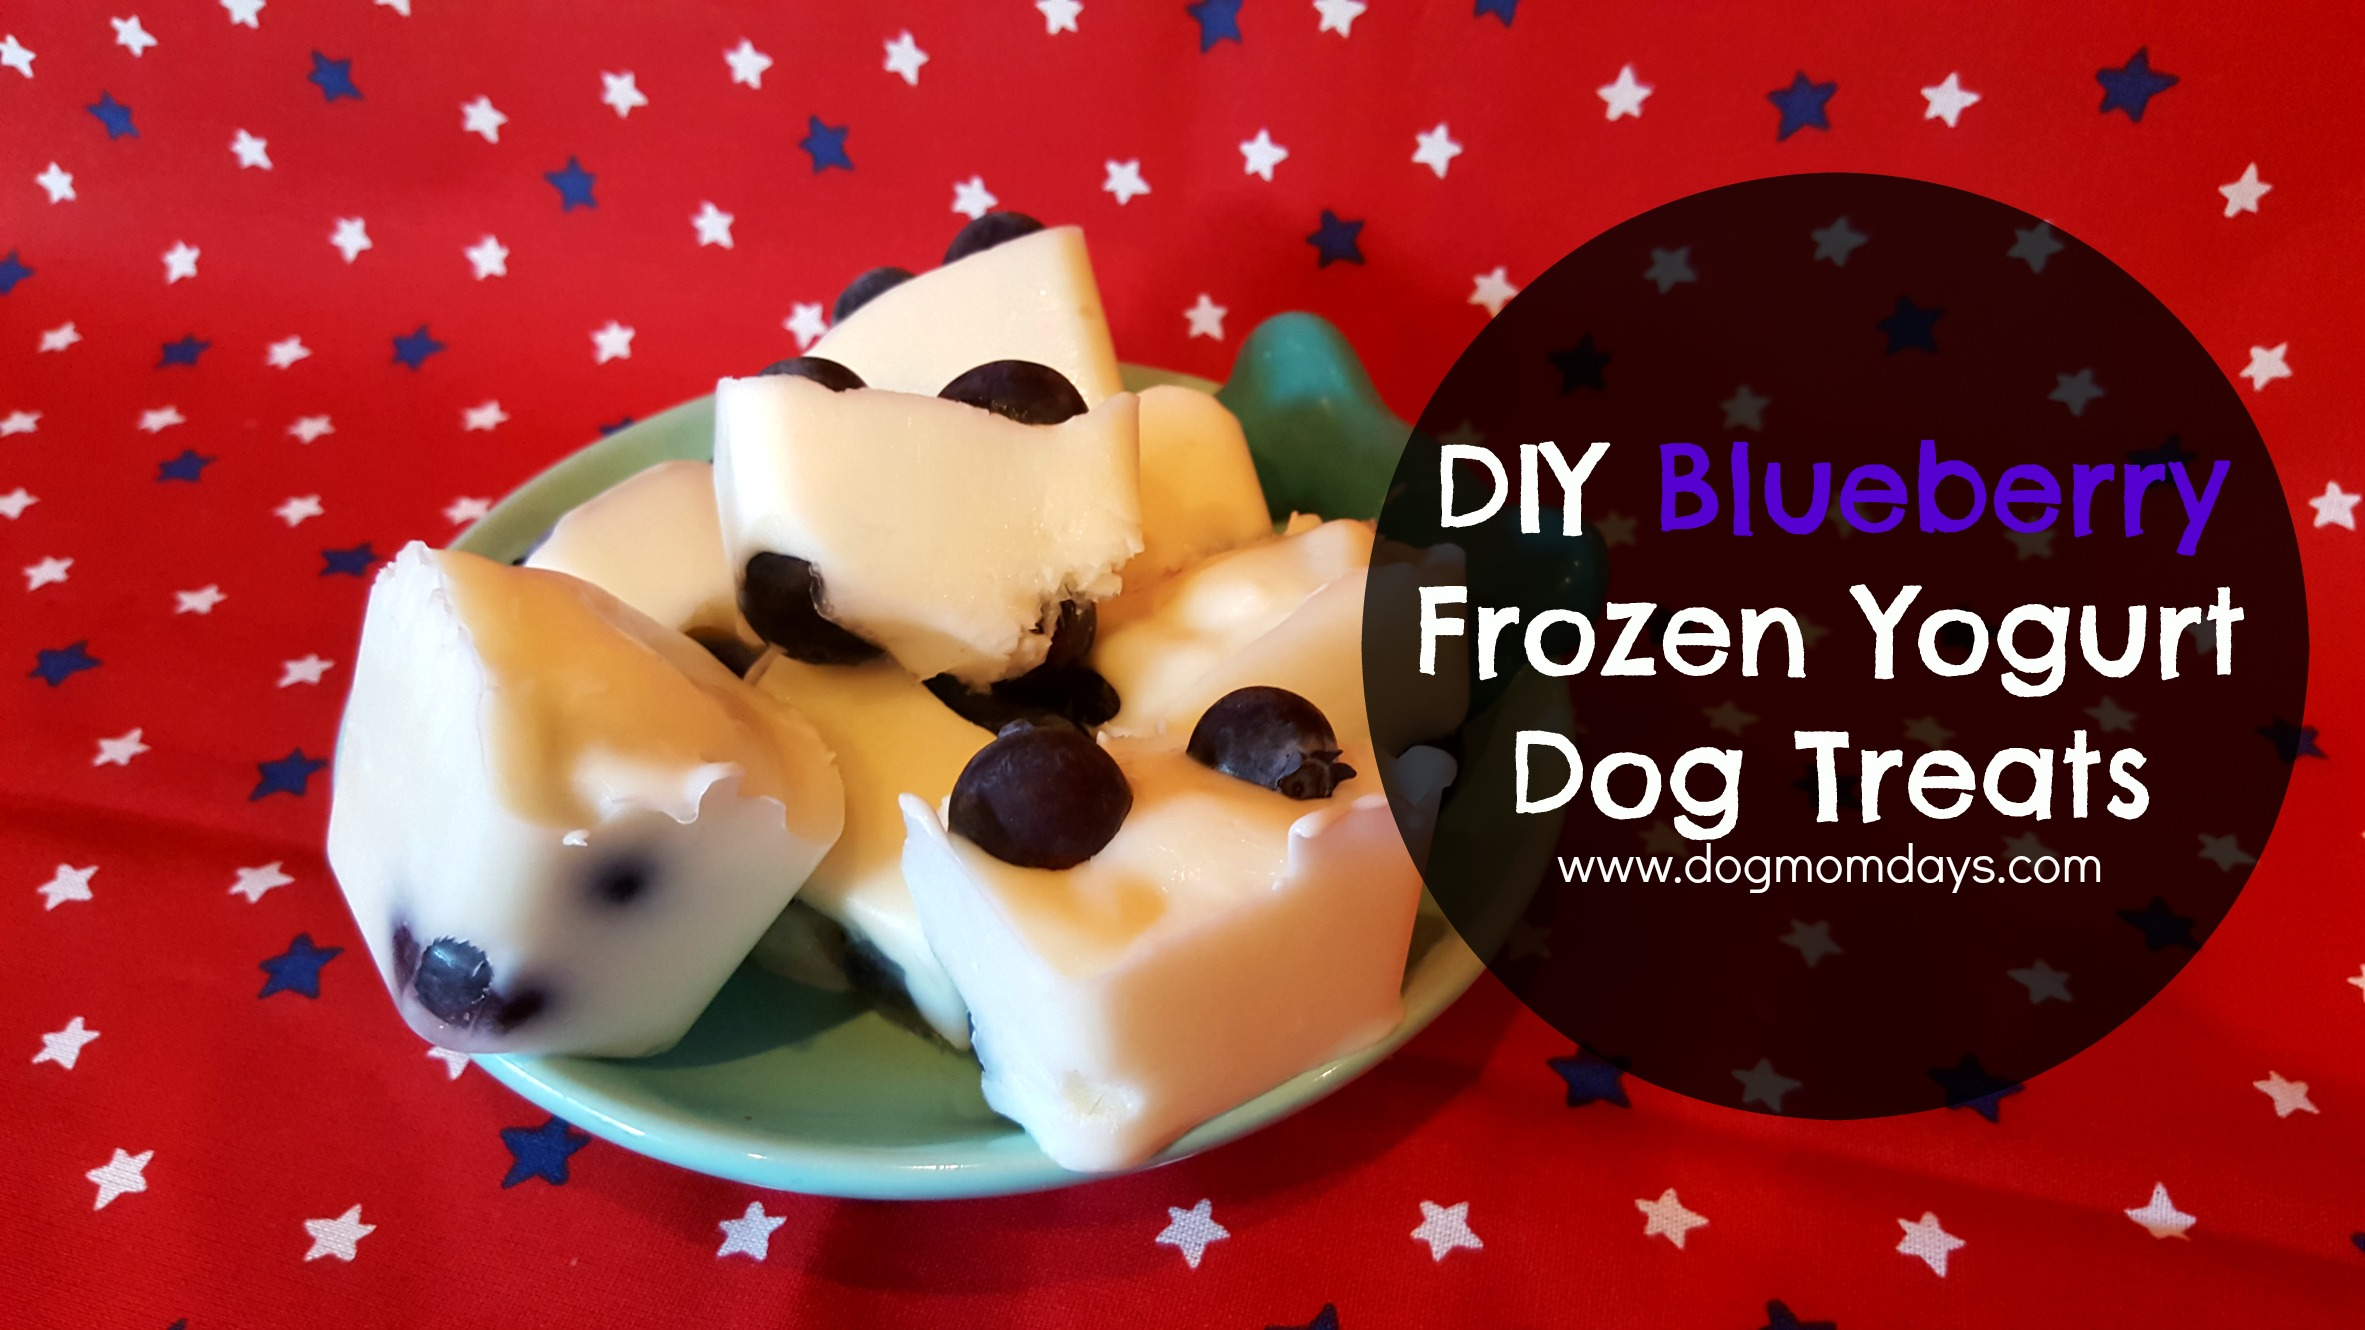 DIY blueberry frozen yogurt dog treats